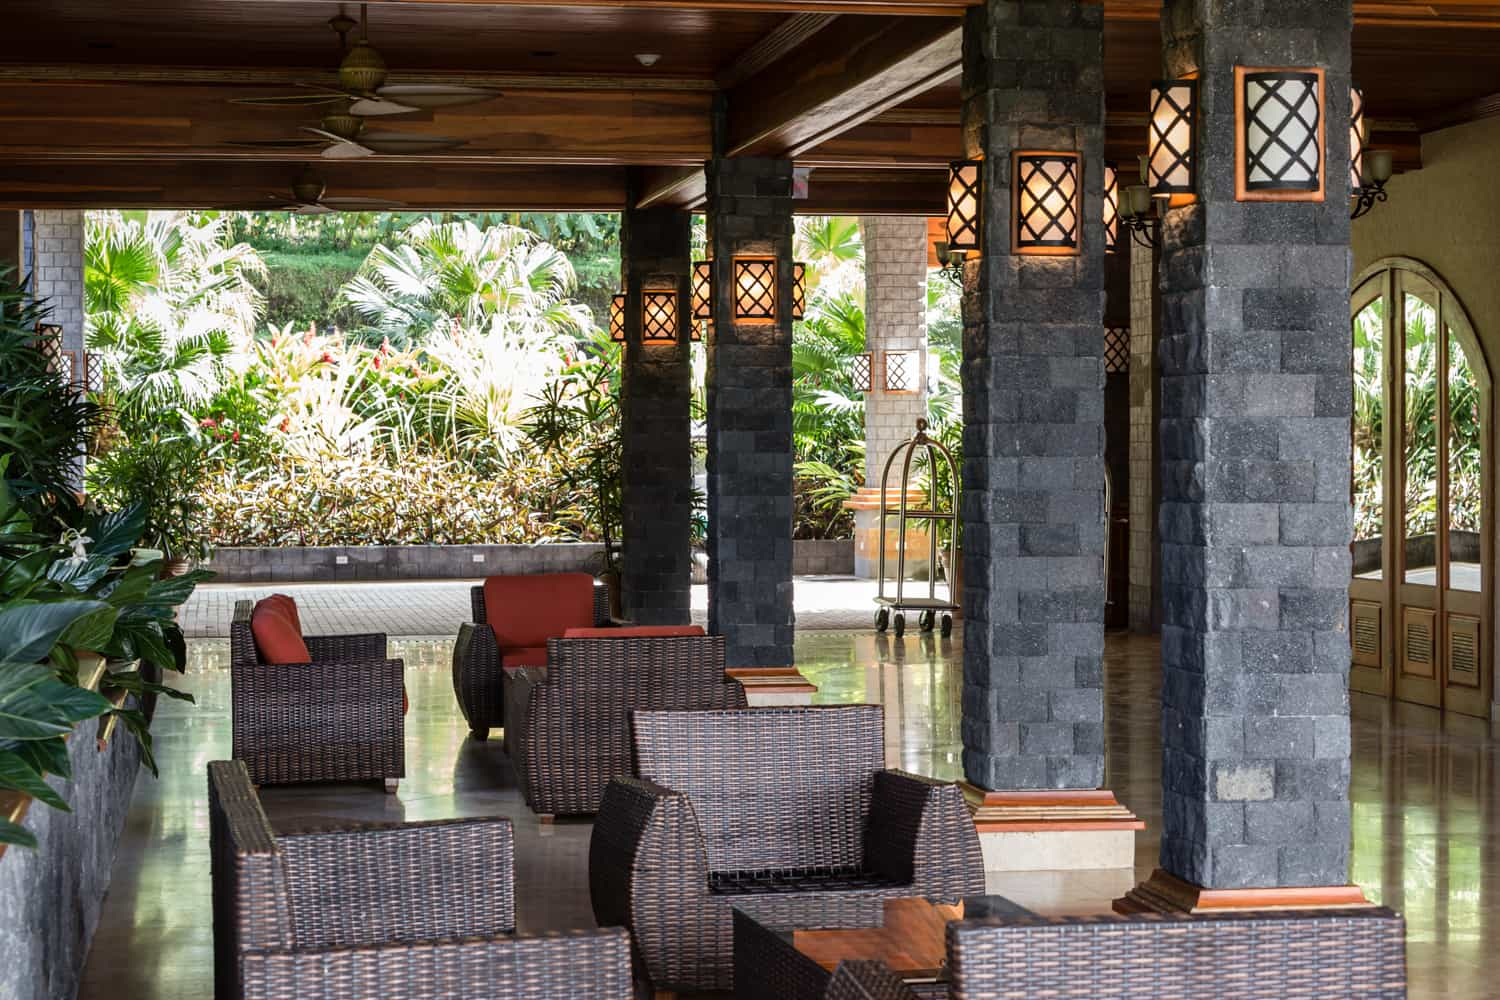 Entrance to the Aracari Terrace at The Springs Resort & Spa in Arenal.